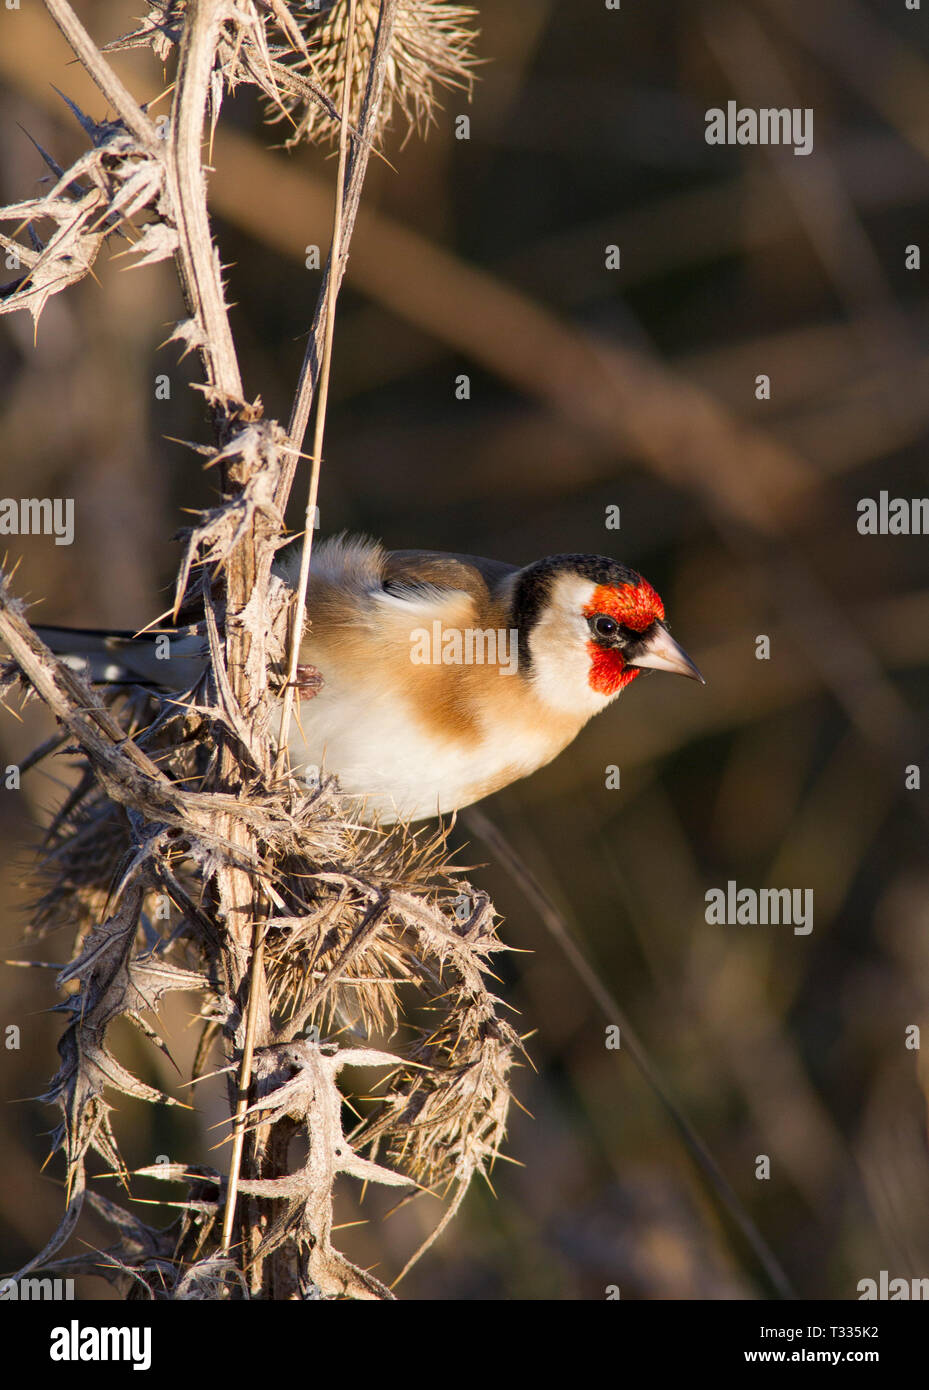 Goldfinch, Carduelis carduelis, single adult perched on thistles.  Taken December. Titchwell, Norfolk, UK. - Stock Image